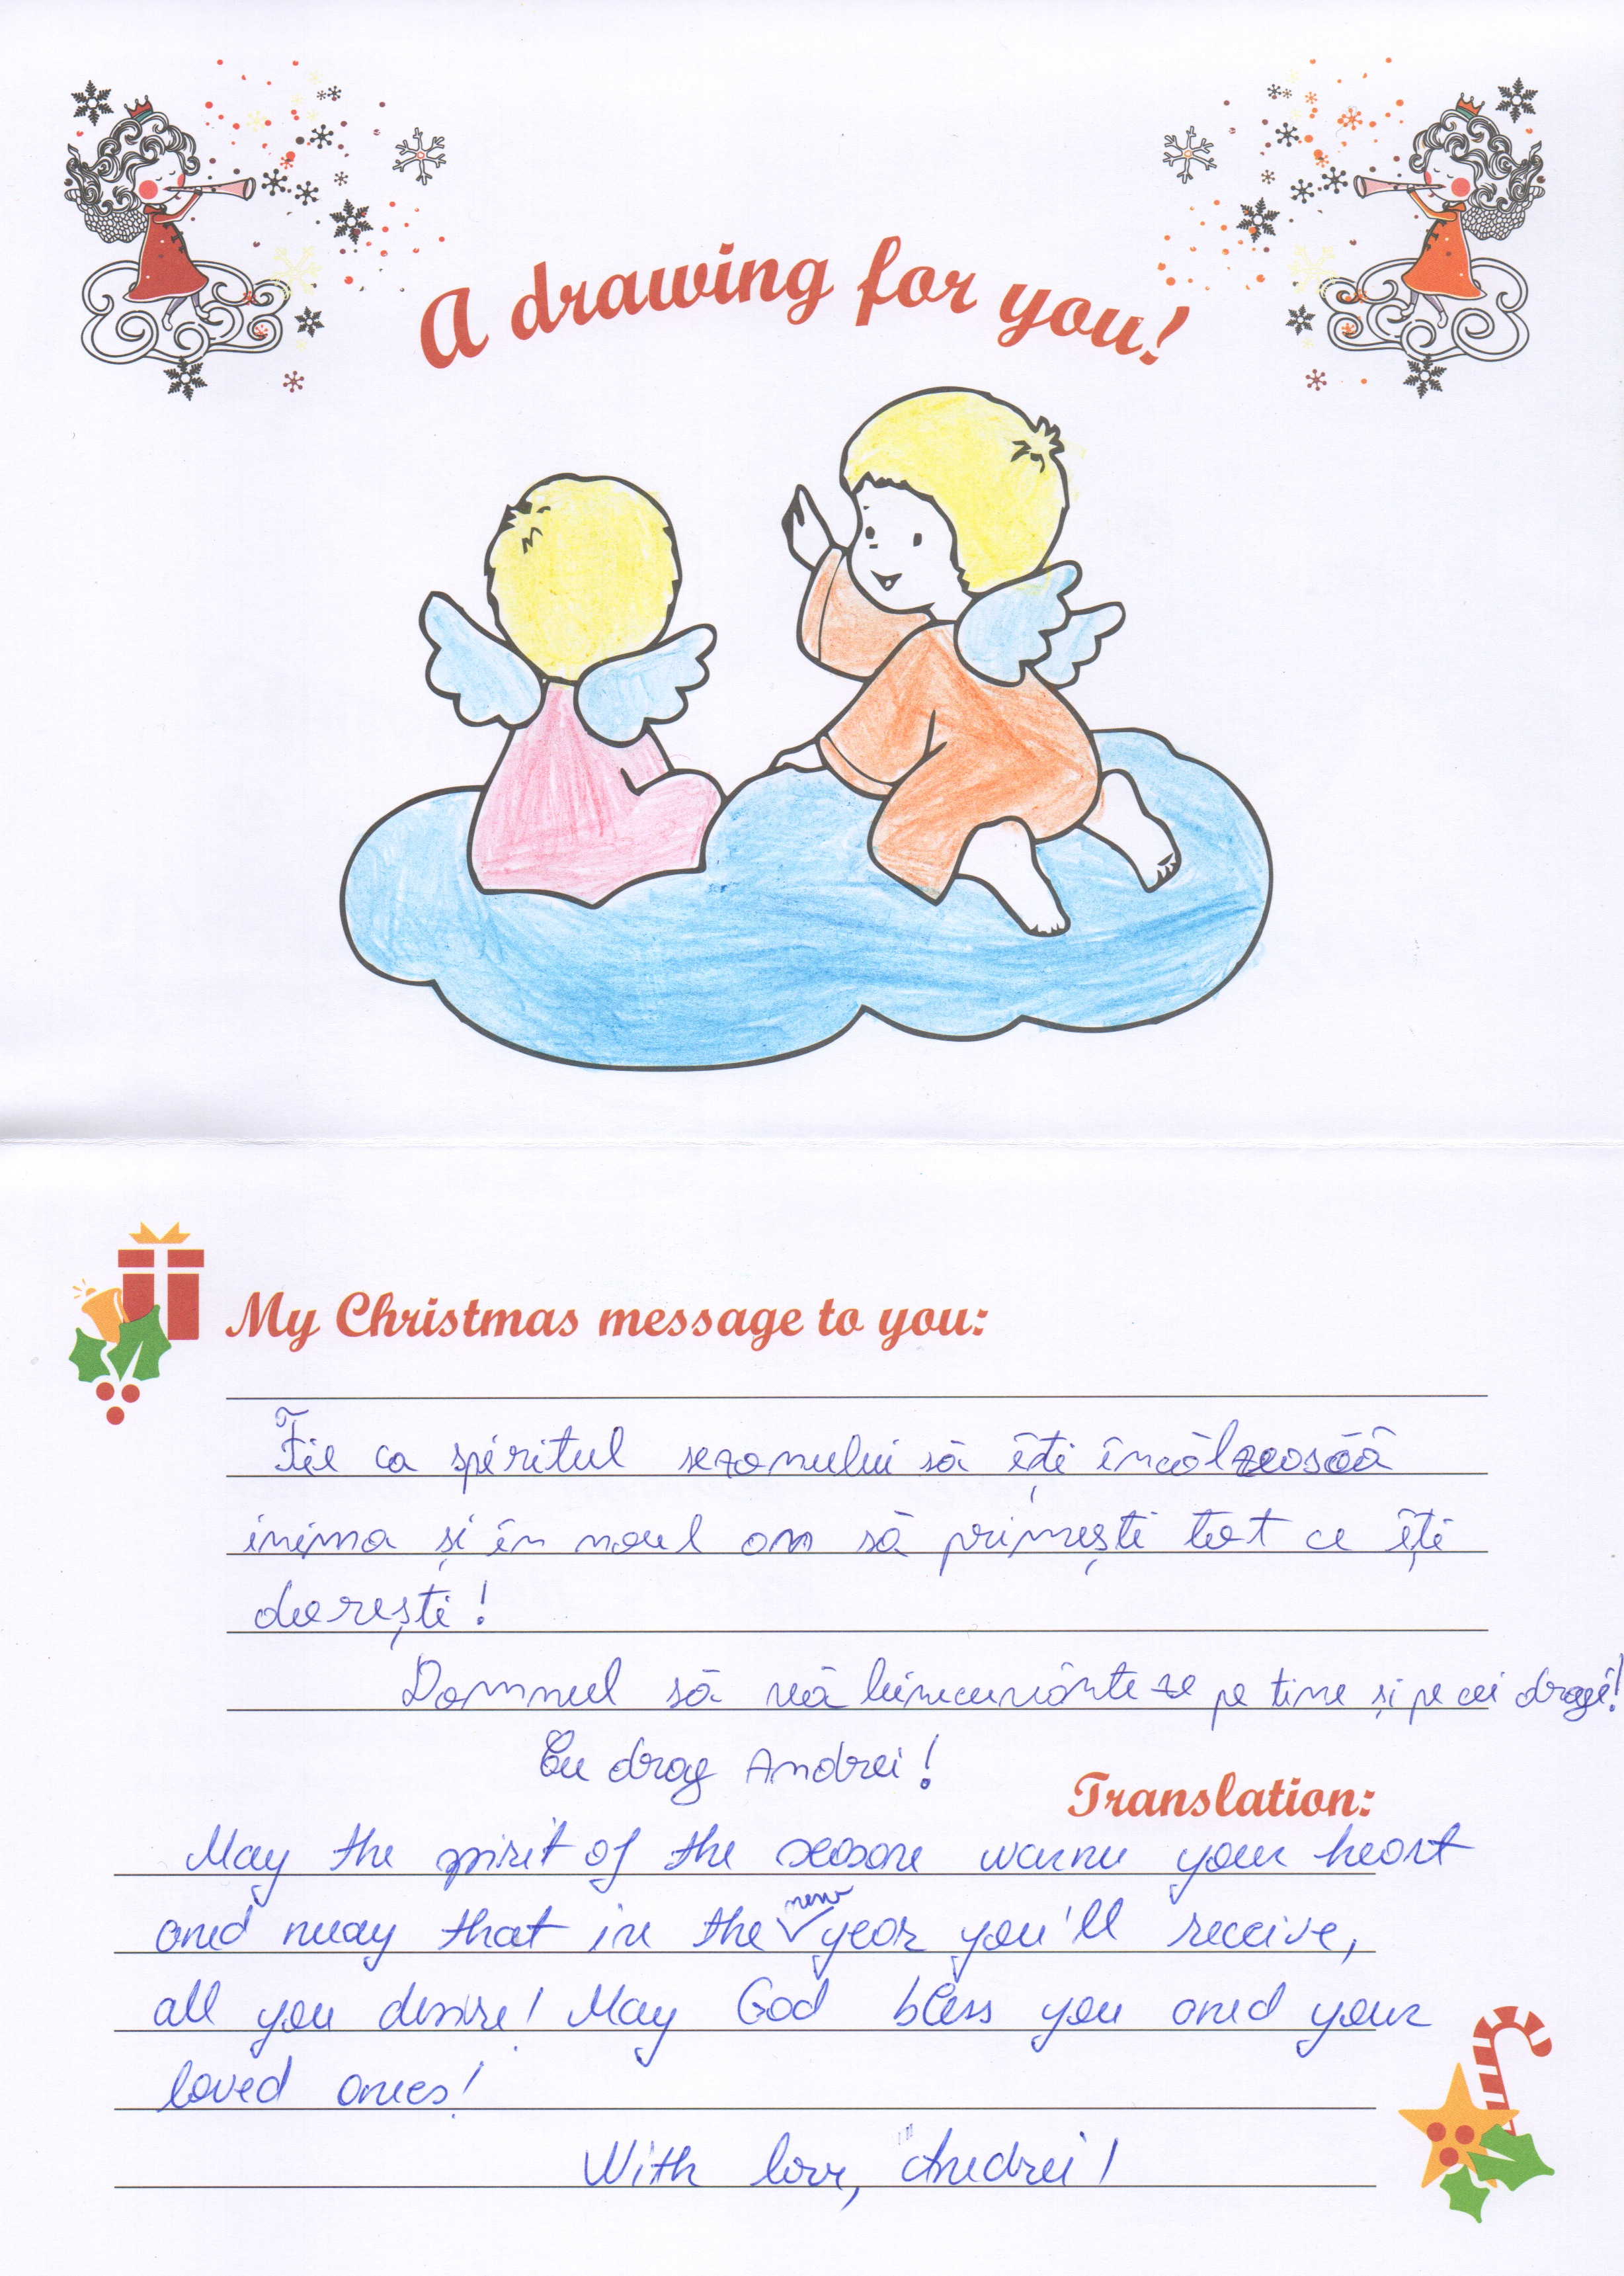 Christmas Greetings To My Sponsor.Christmas Wishes From Romania Giving Gratefully